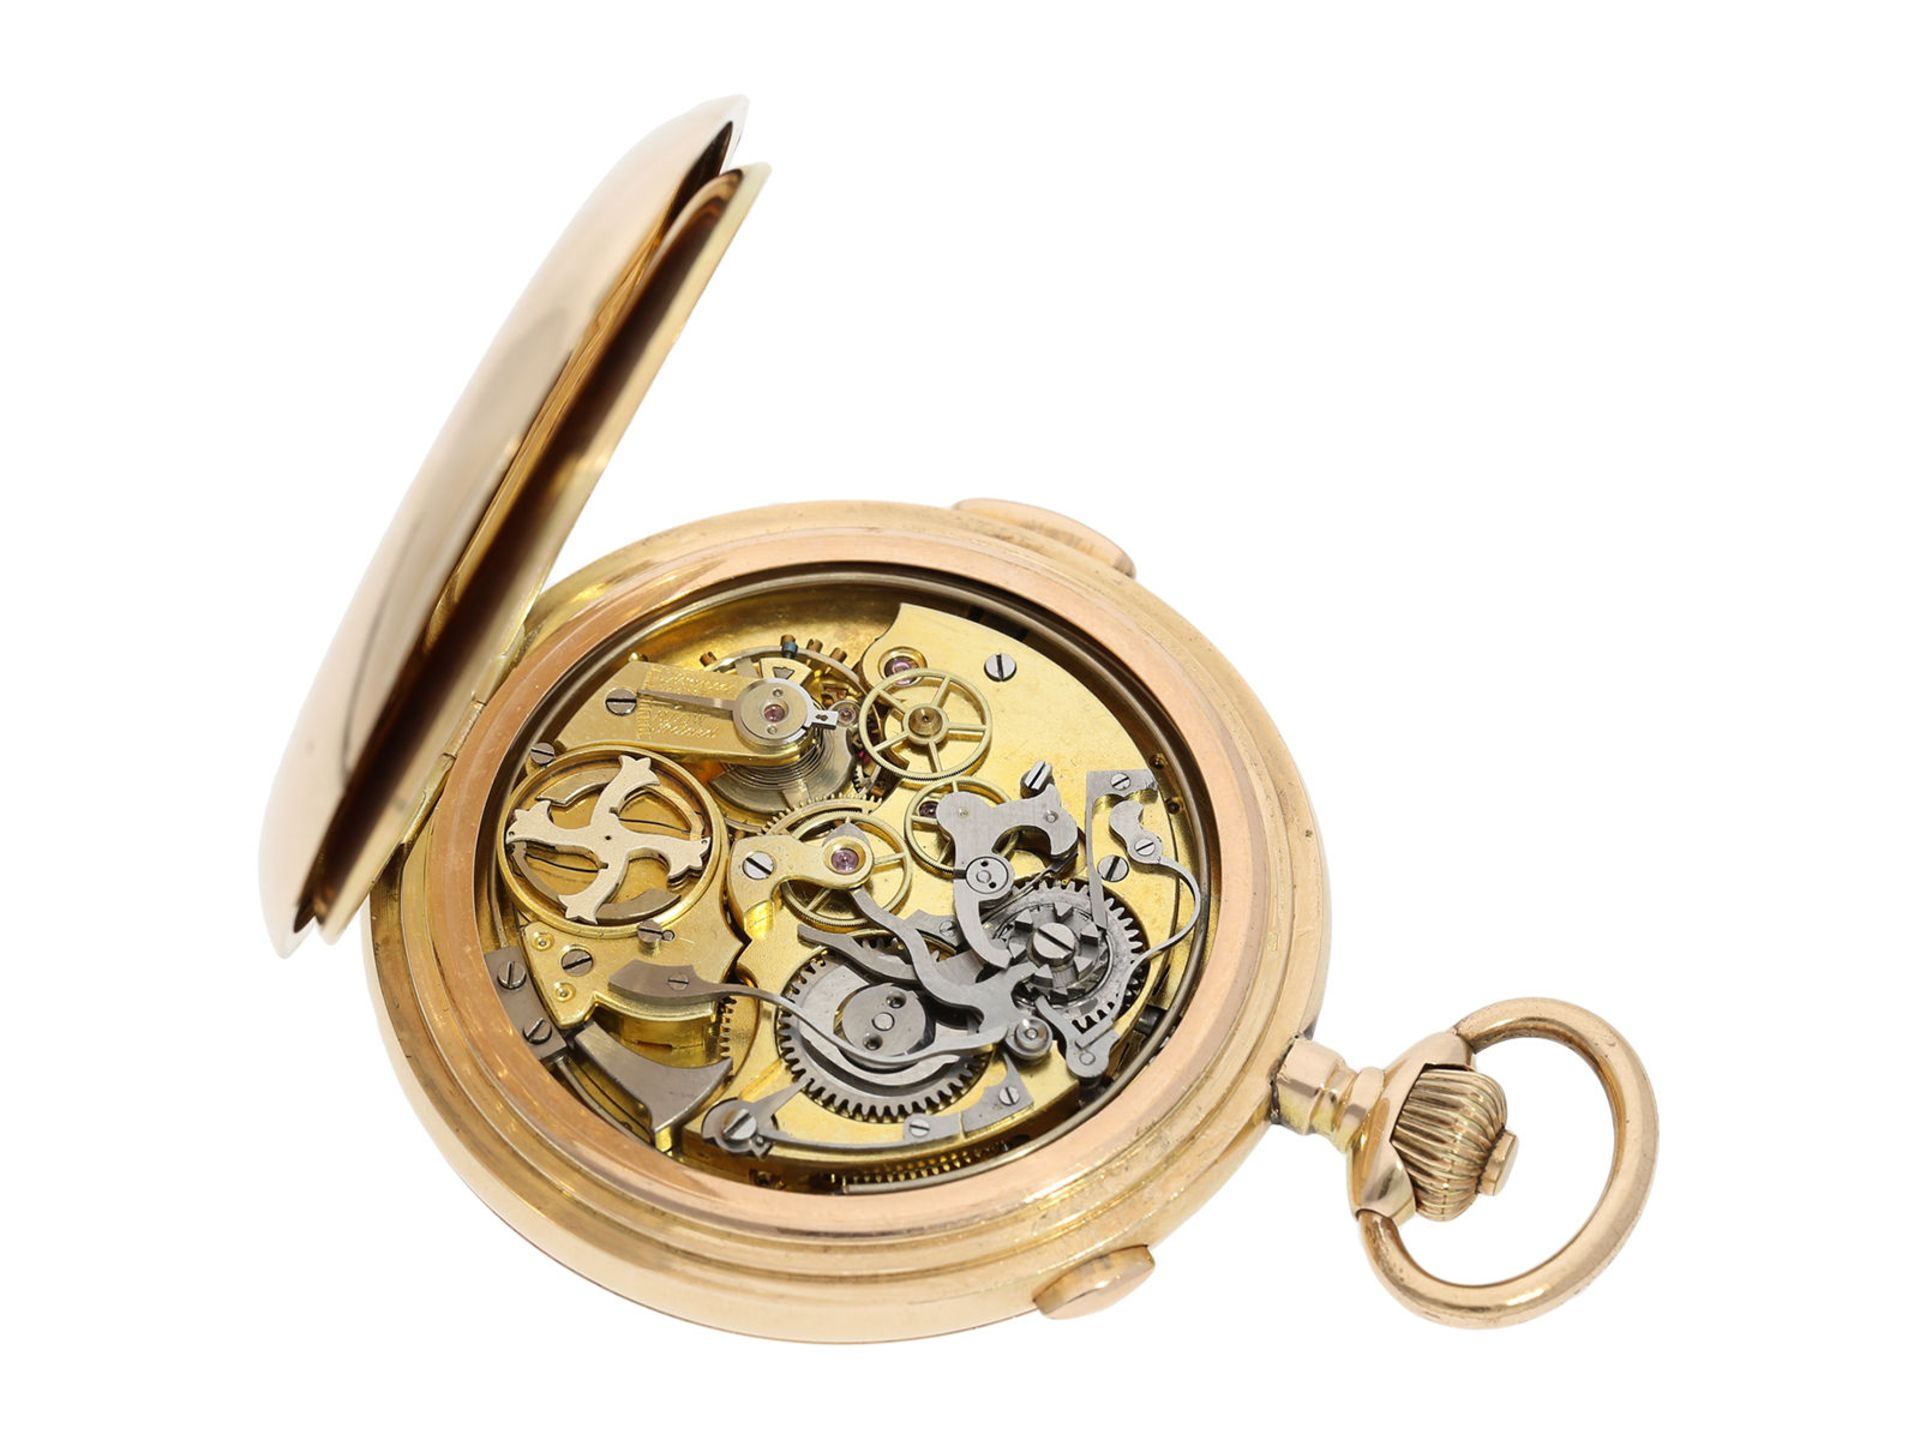 Pocket watch: large Swiss gold hunting case repeater with chronograph, brand Invicta, No. 77372, ca. - Bild 7 aus 8